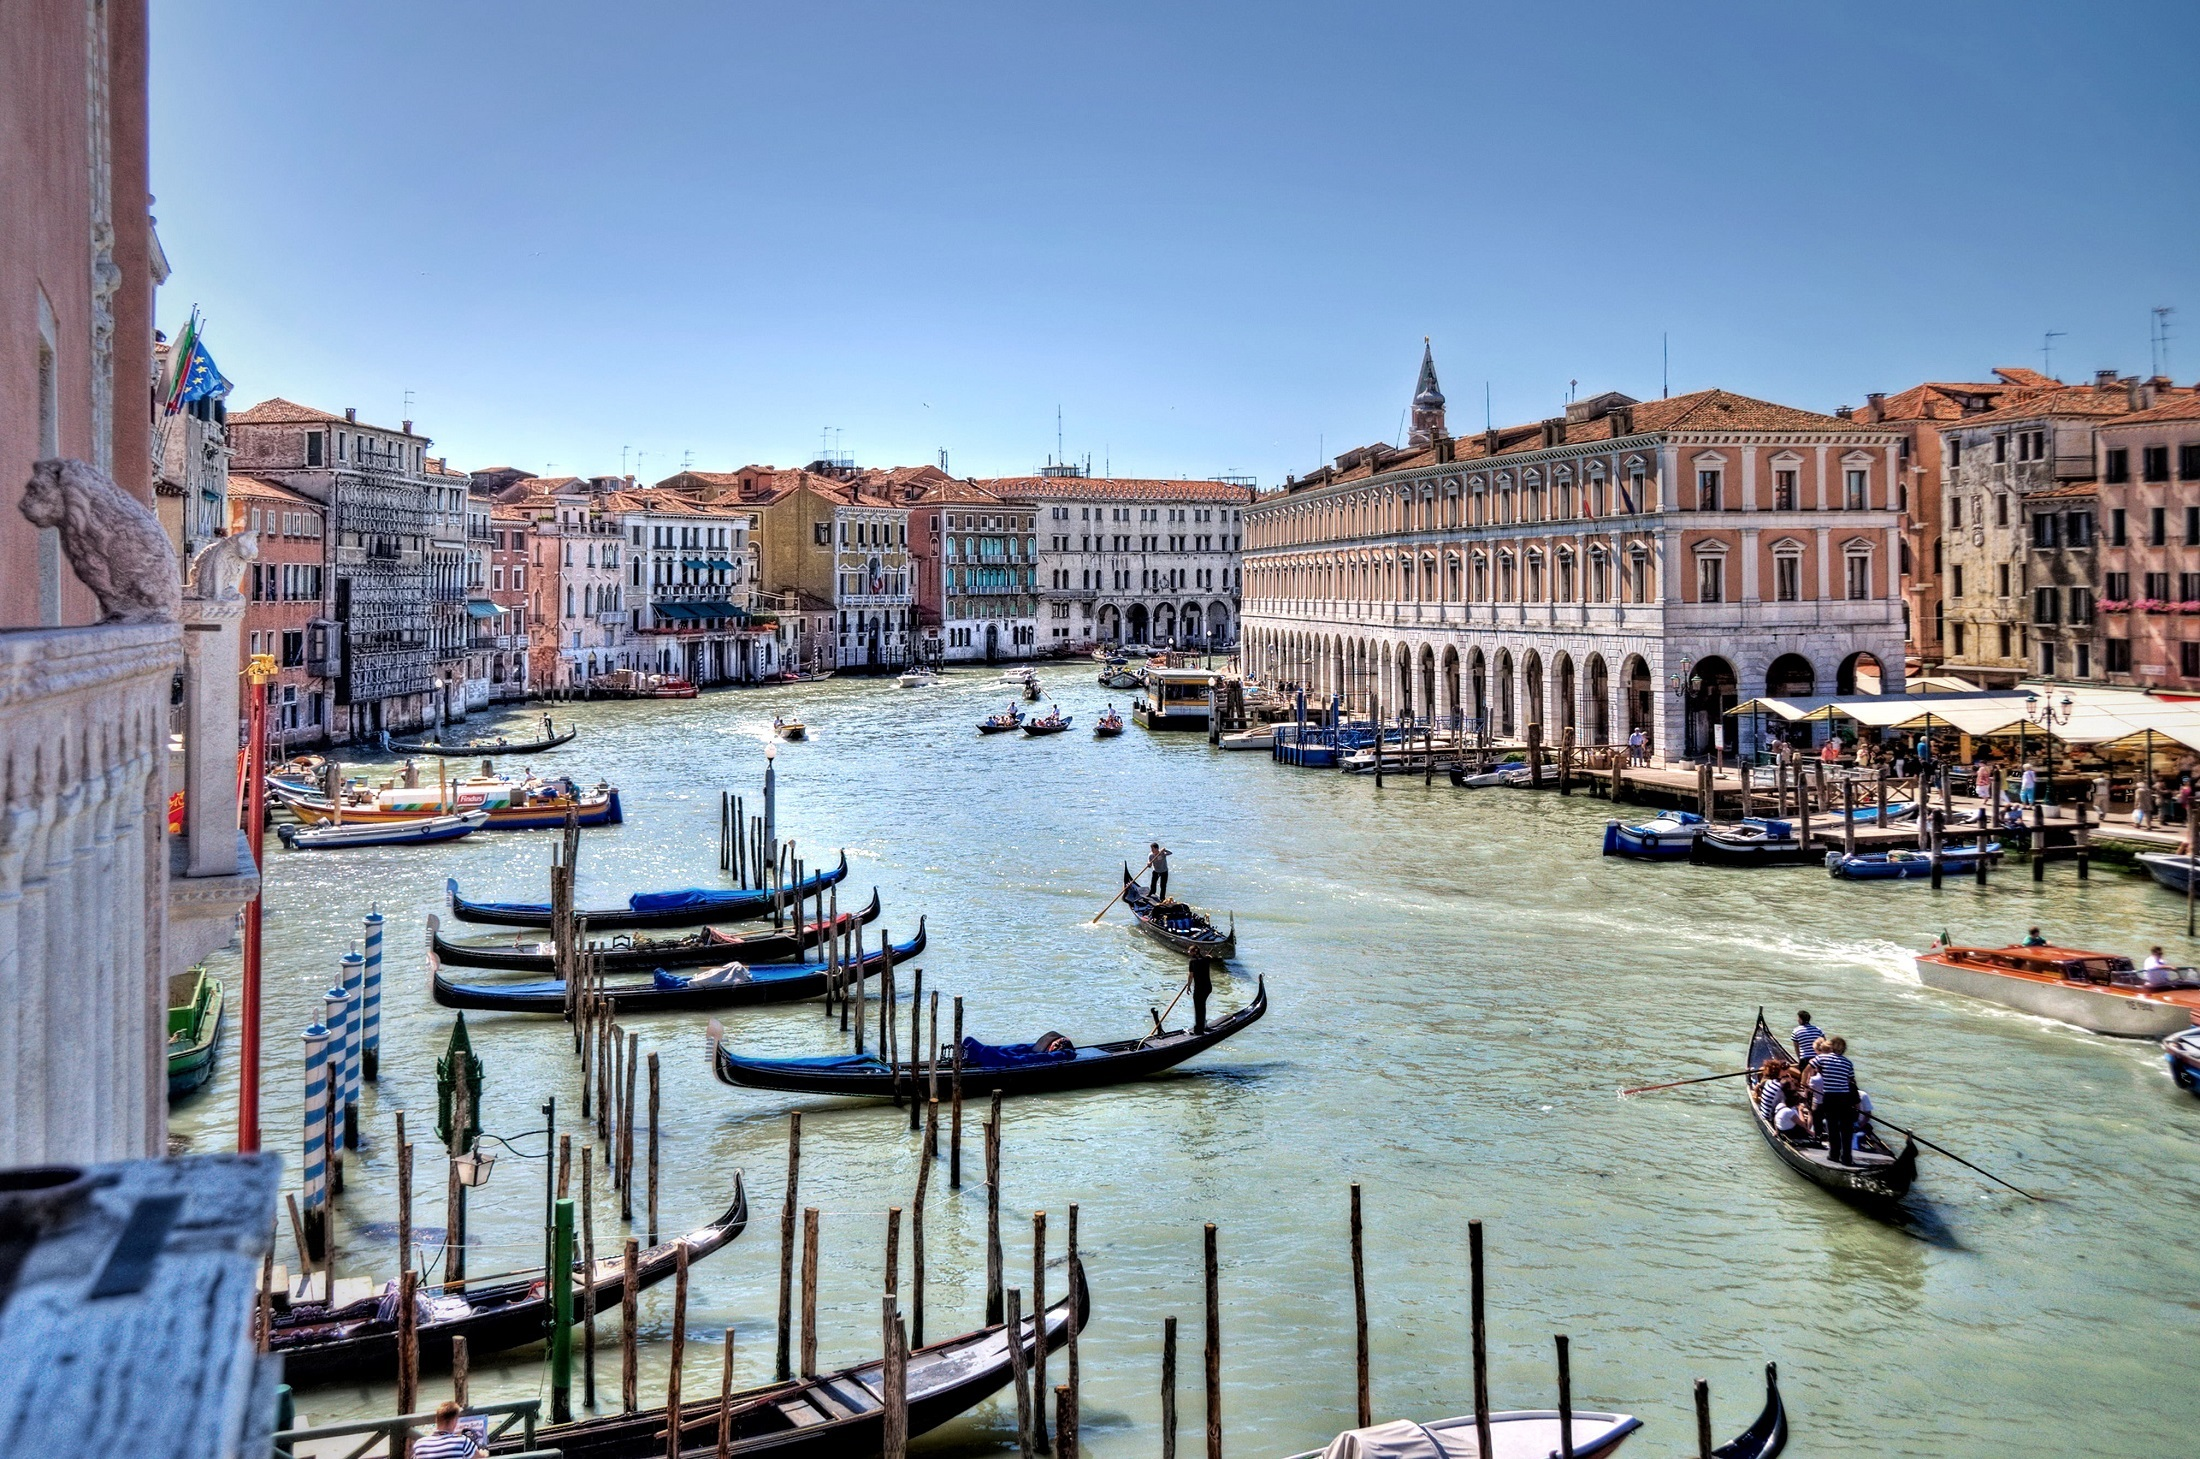 Venice City, Architecture, Boat, Building, City, HQ Photo